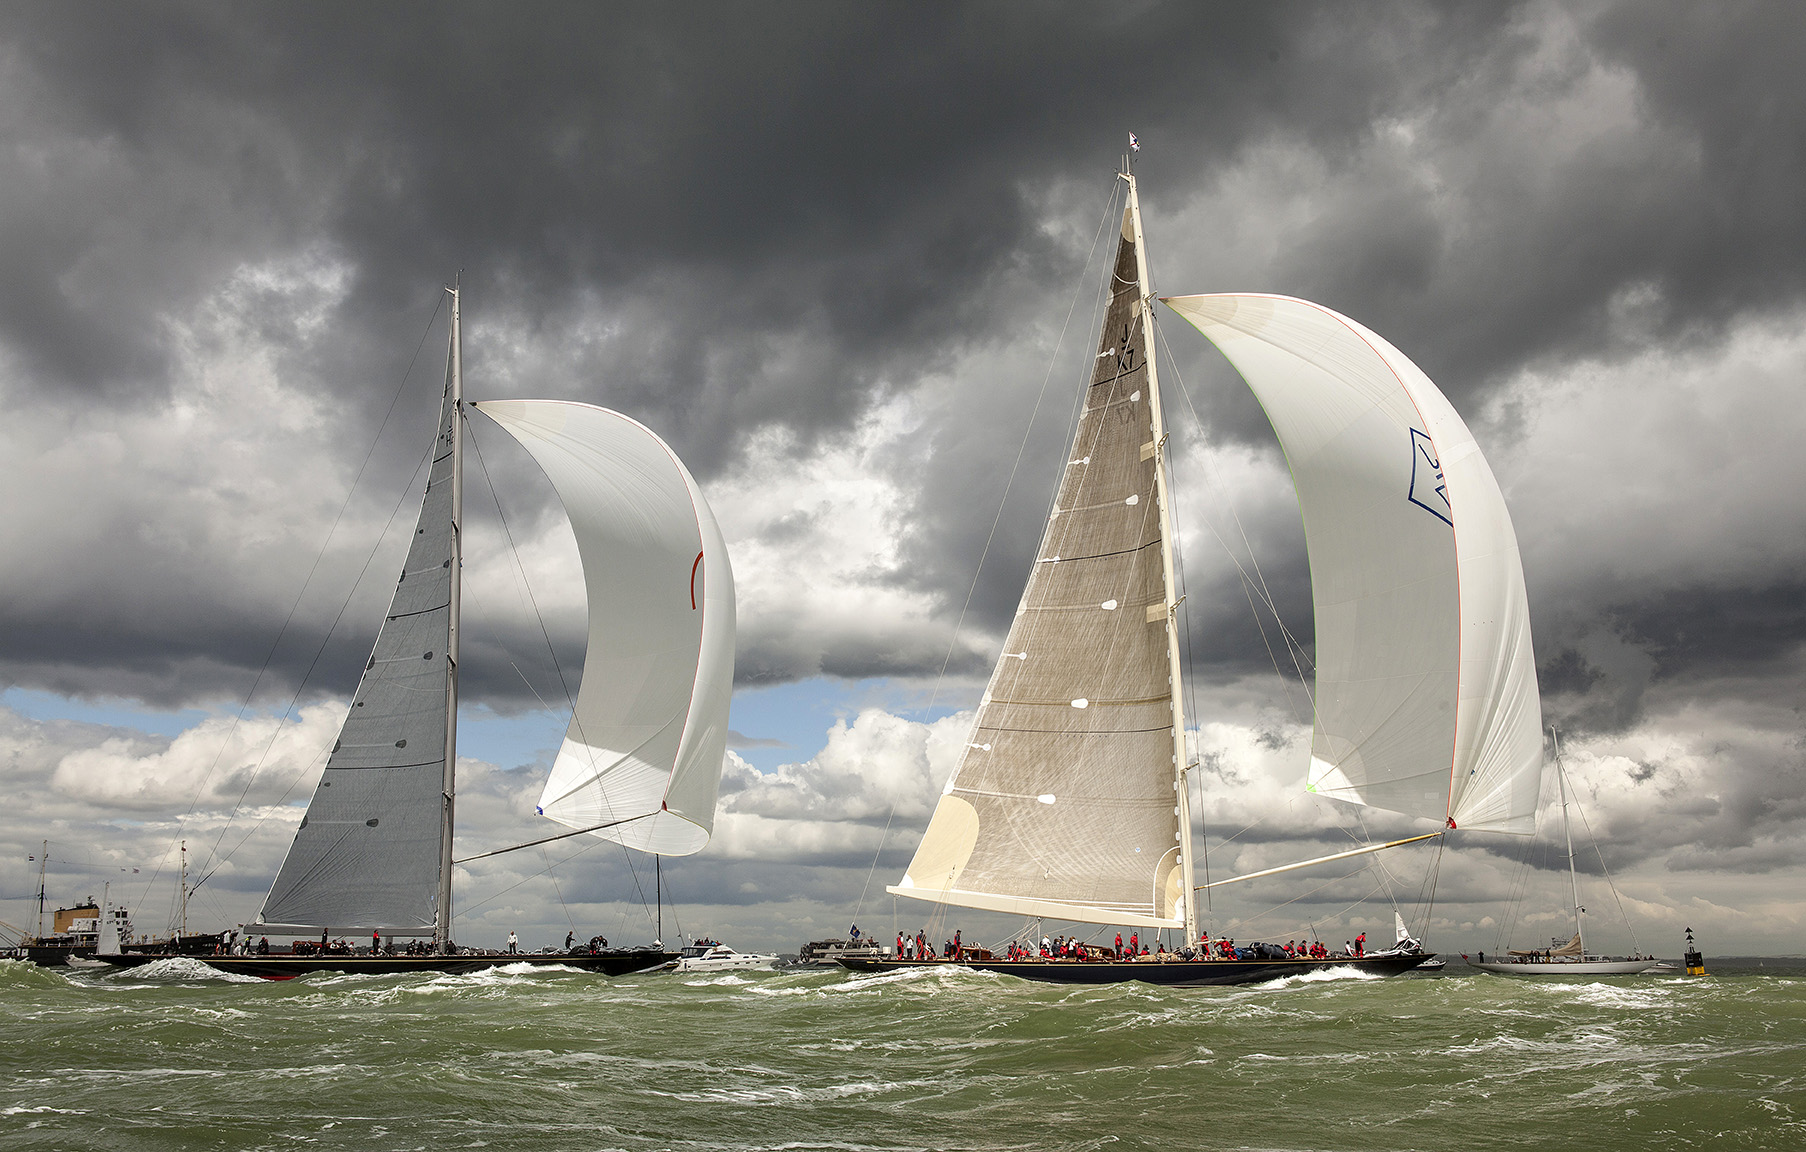 G312 - J Class Regatta in the Solent